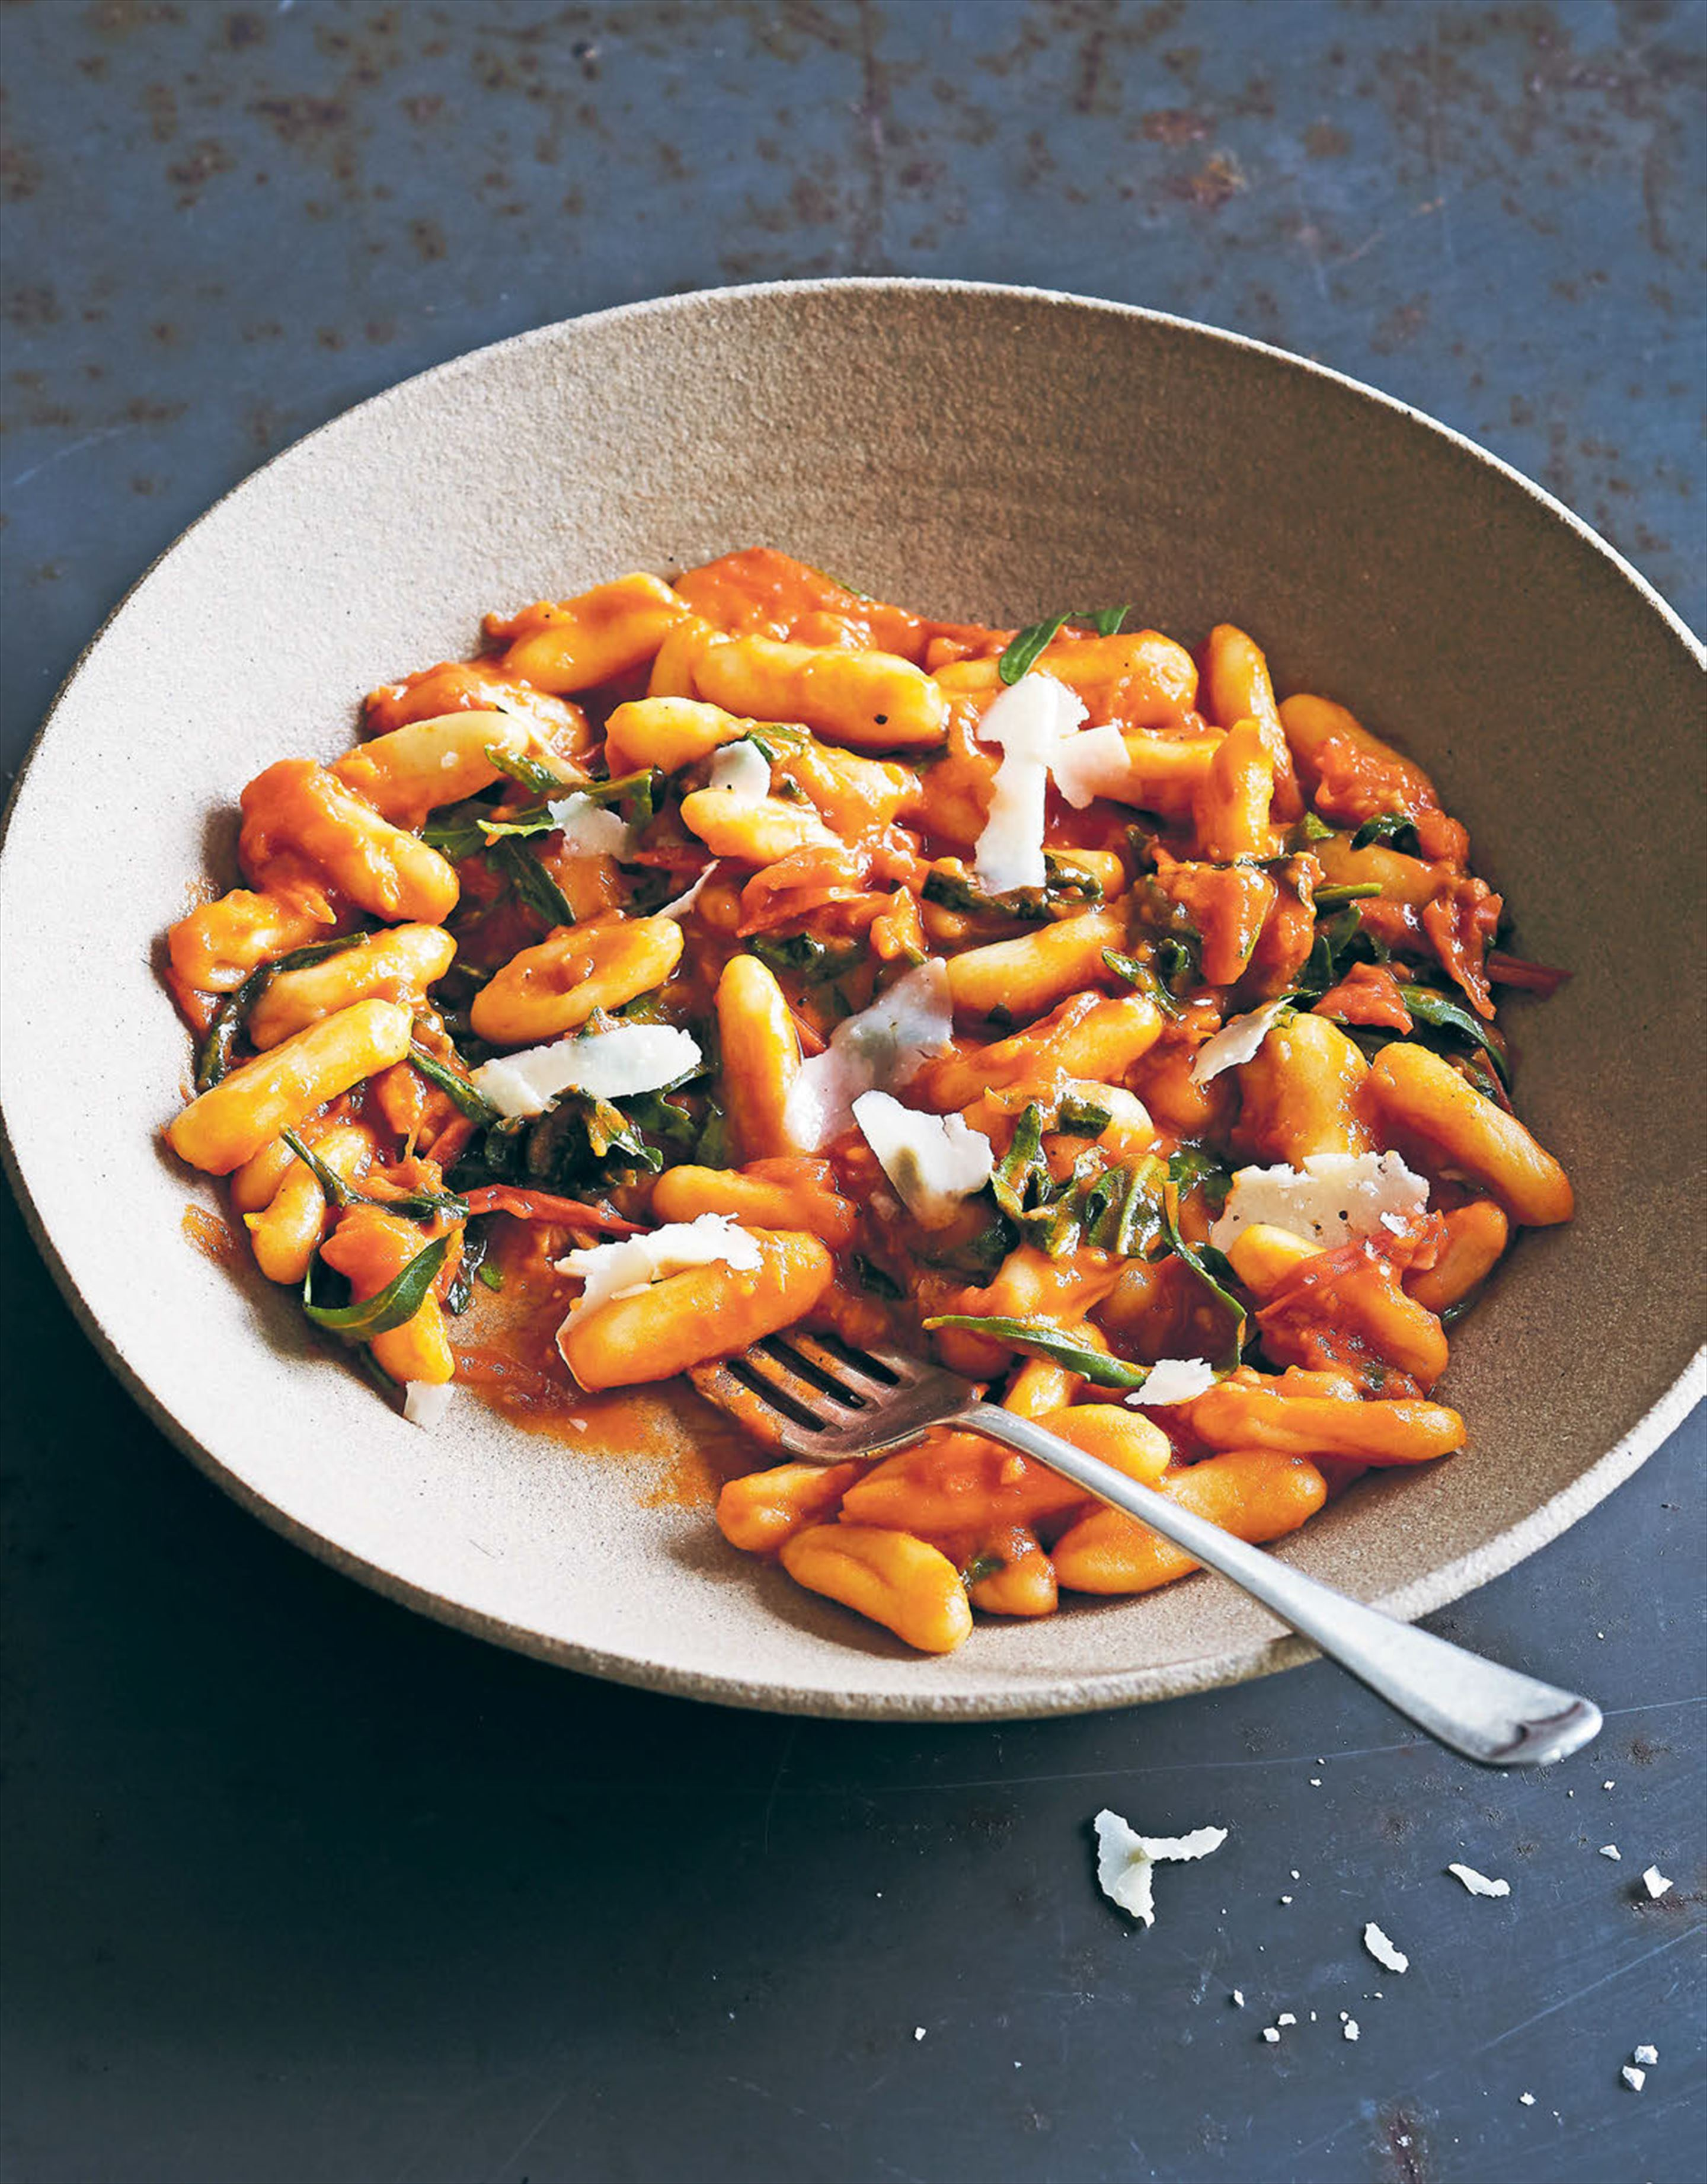 Cavatelli with rocket and tomatoes